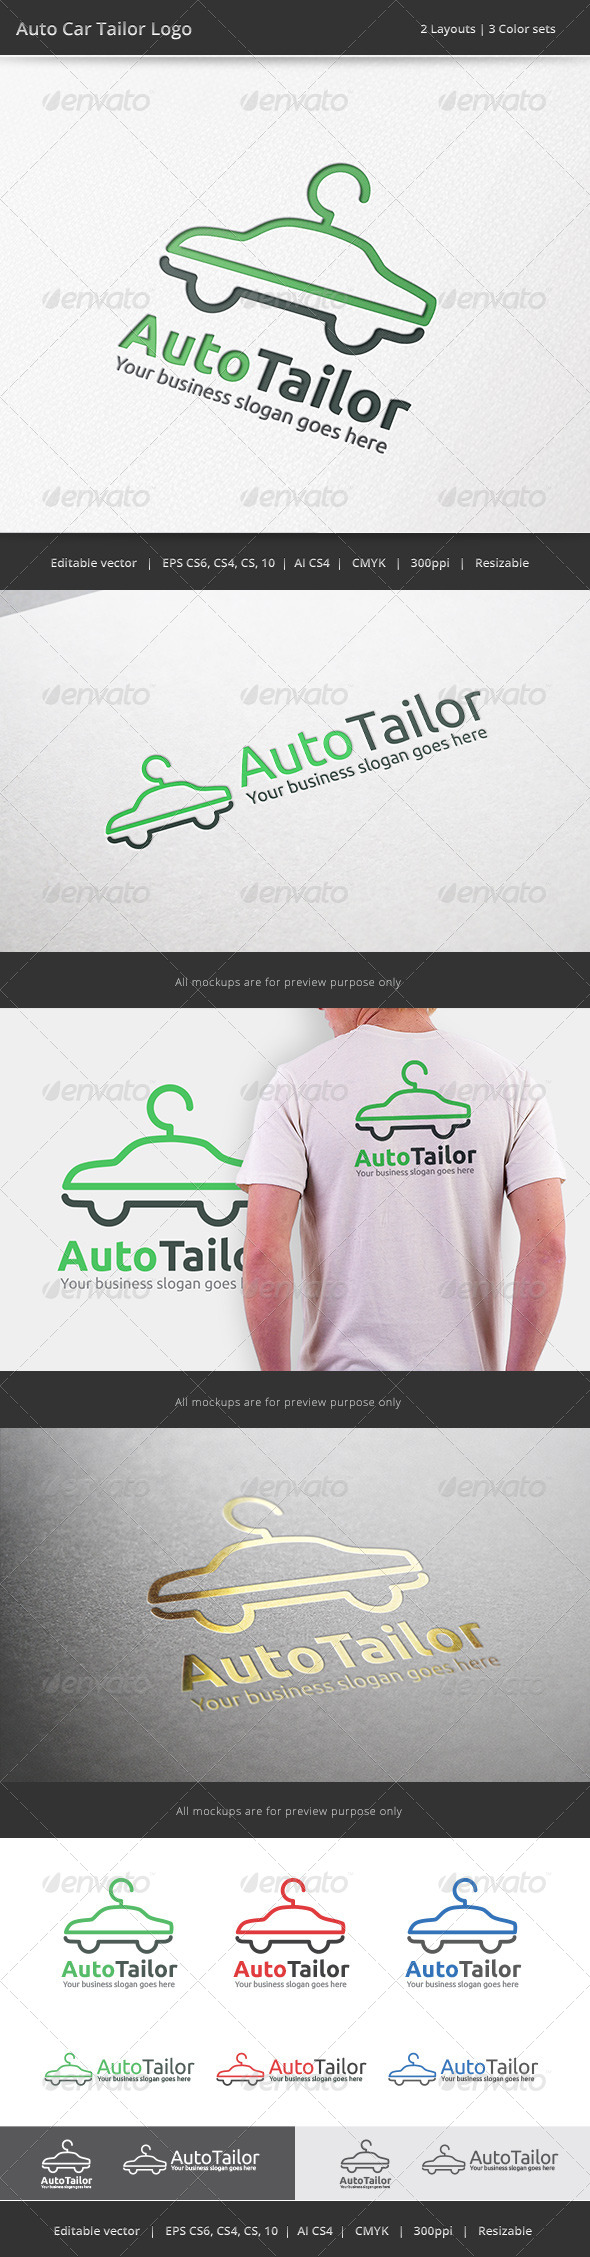 Auto Car Tailor Logo